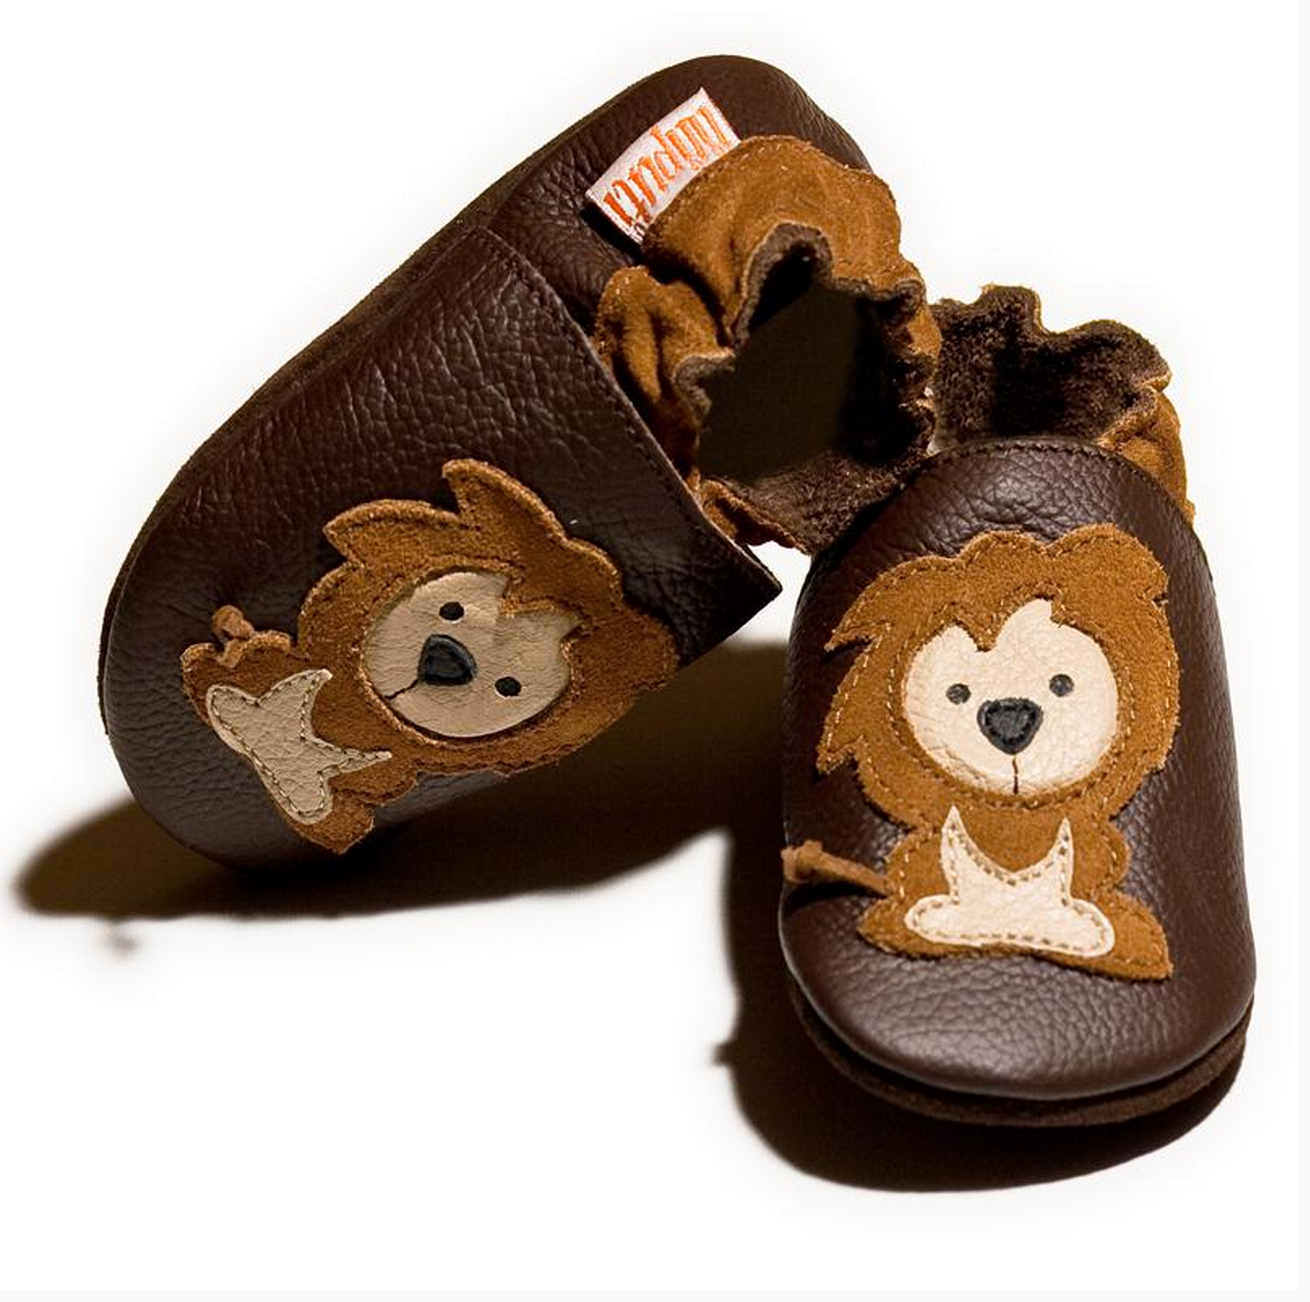 Liliputi Soft Baby Shoes - Protector Lions [it] Scarpine morbide in pelle Liliputi - Leone